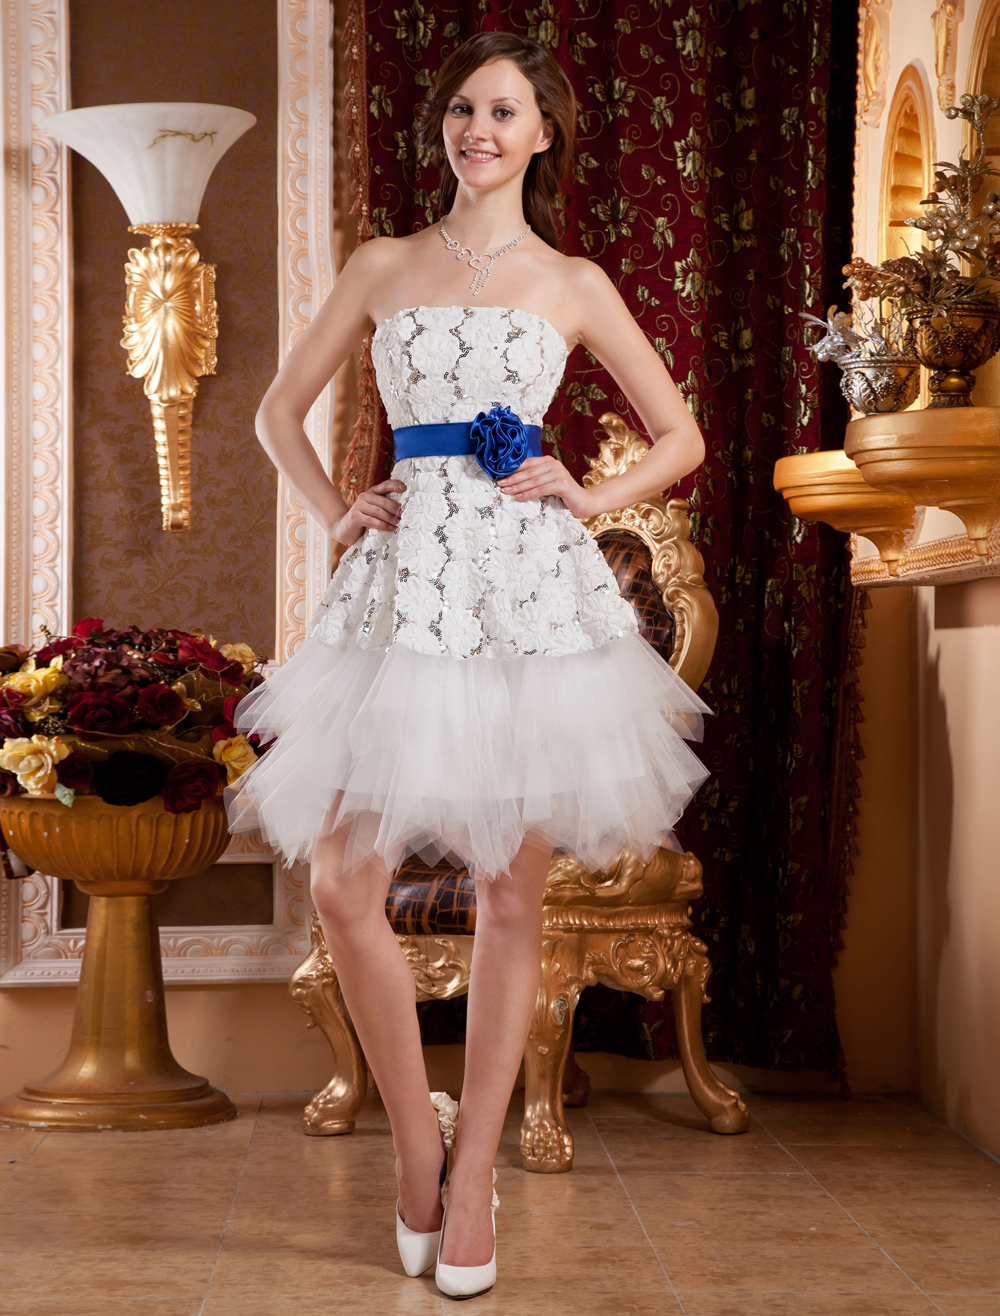 Buy White Strapless Knee Length Sequin Flower Woman's Homecoming Dress for $92.69 in Milanoo store